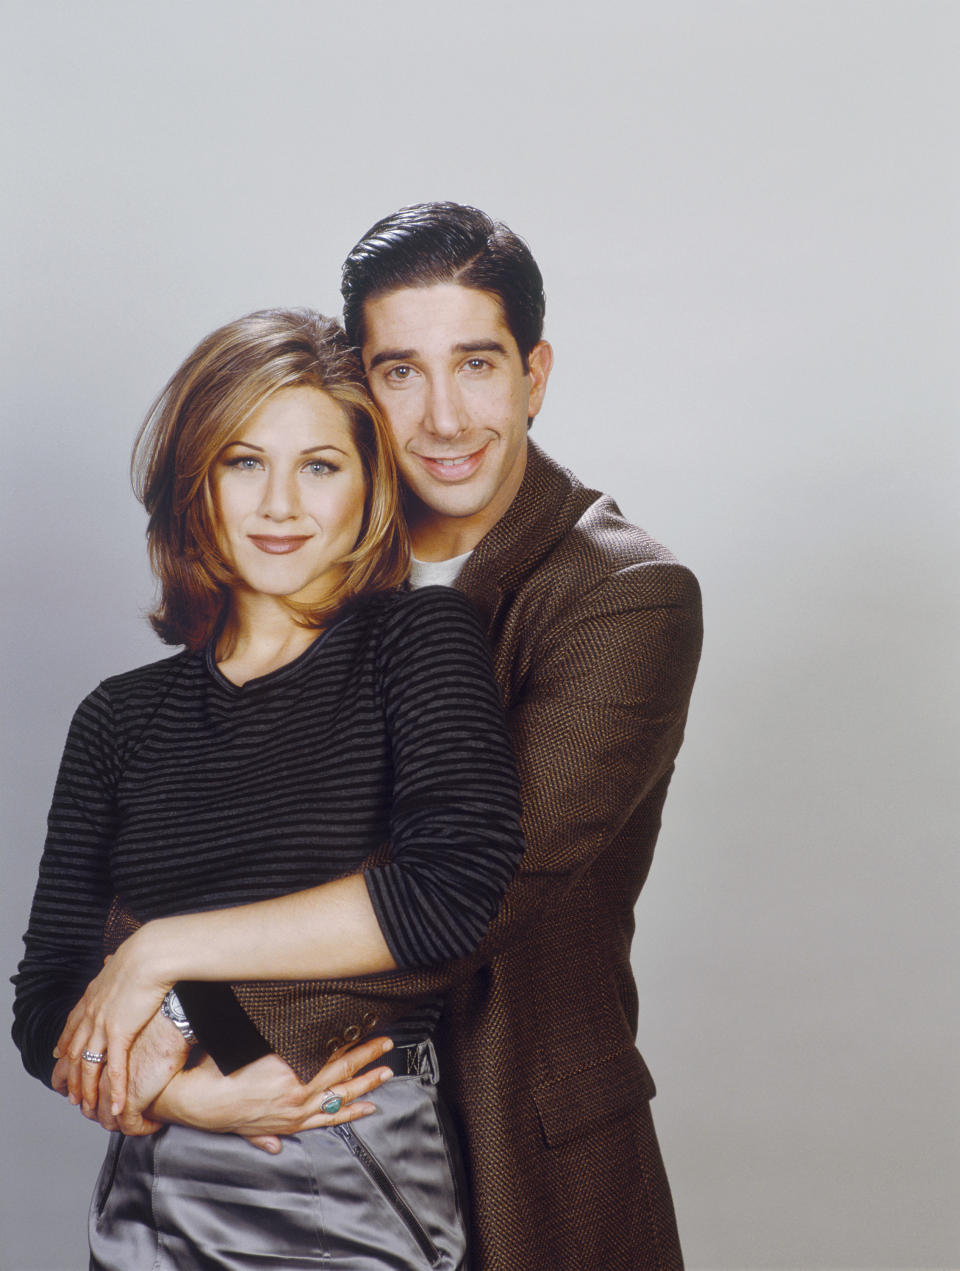 FRIENDS -- Pictured: (l-r) Jennifer Aniston as Rachel Green, David Schwimmer as Ross Geller  (Photo by NBCU Photo Bank/NBCUniversal via Getty Images via Getty Images)